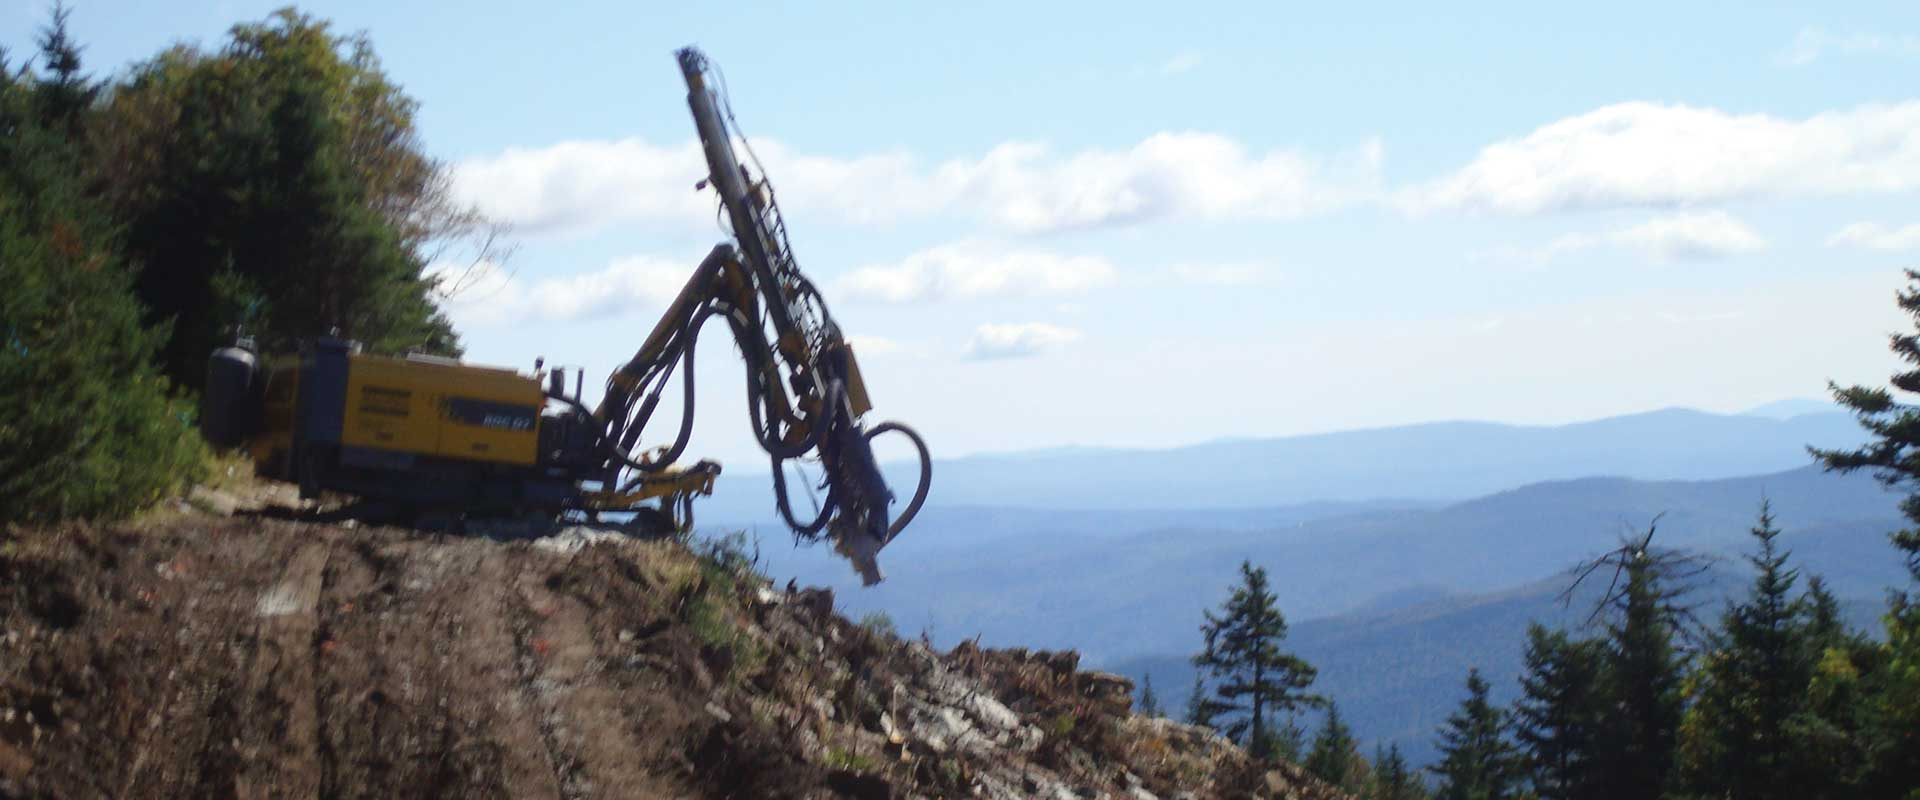 Skyeburst & Cruise Control Trail Construction - Killington Resort